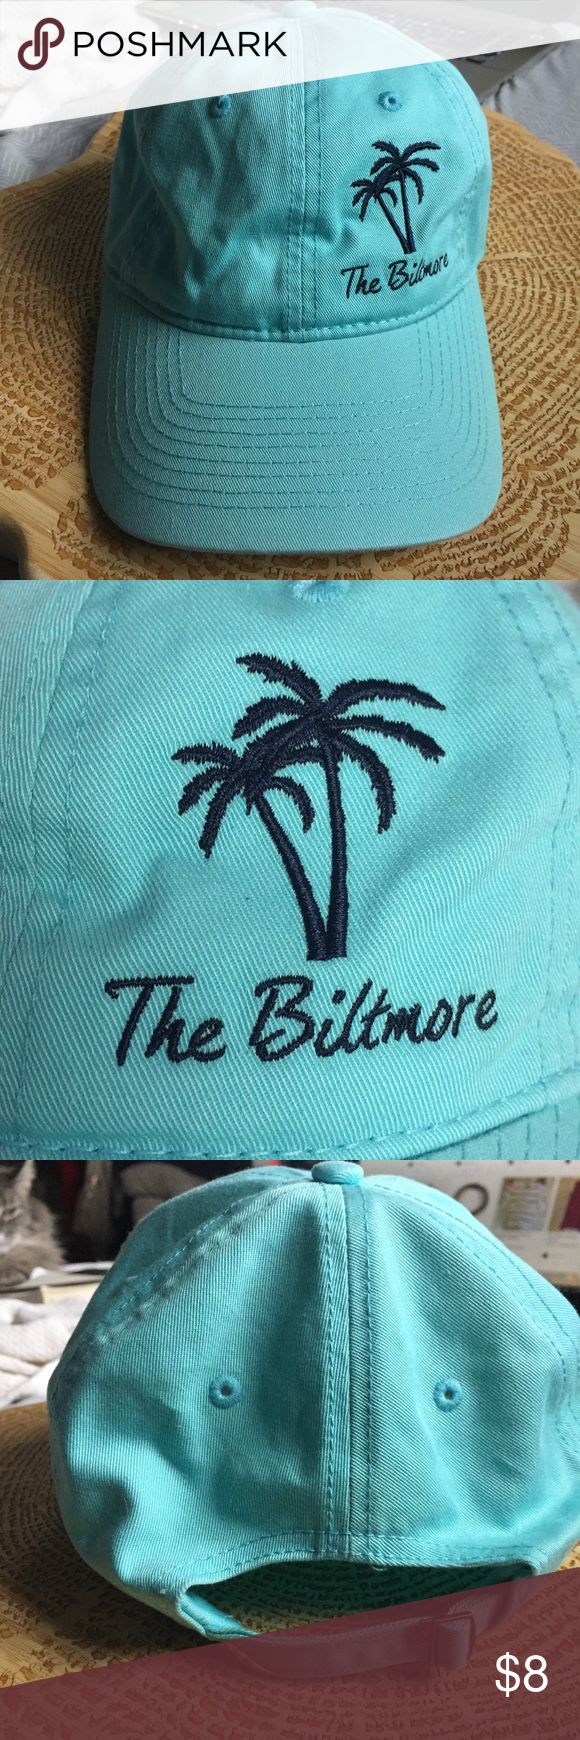 The Biltmore Hat - NEW!  Brand new!!! Never worn!!   No visible defects! Perfect condition!!   All offers are welcome! All reasonable offers are accepted!!!   Bundle & save!    Add any 濾 listing for free when you purchase this item!!!   Feel free to comment any questions!! Accessories Hats